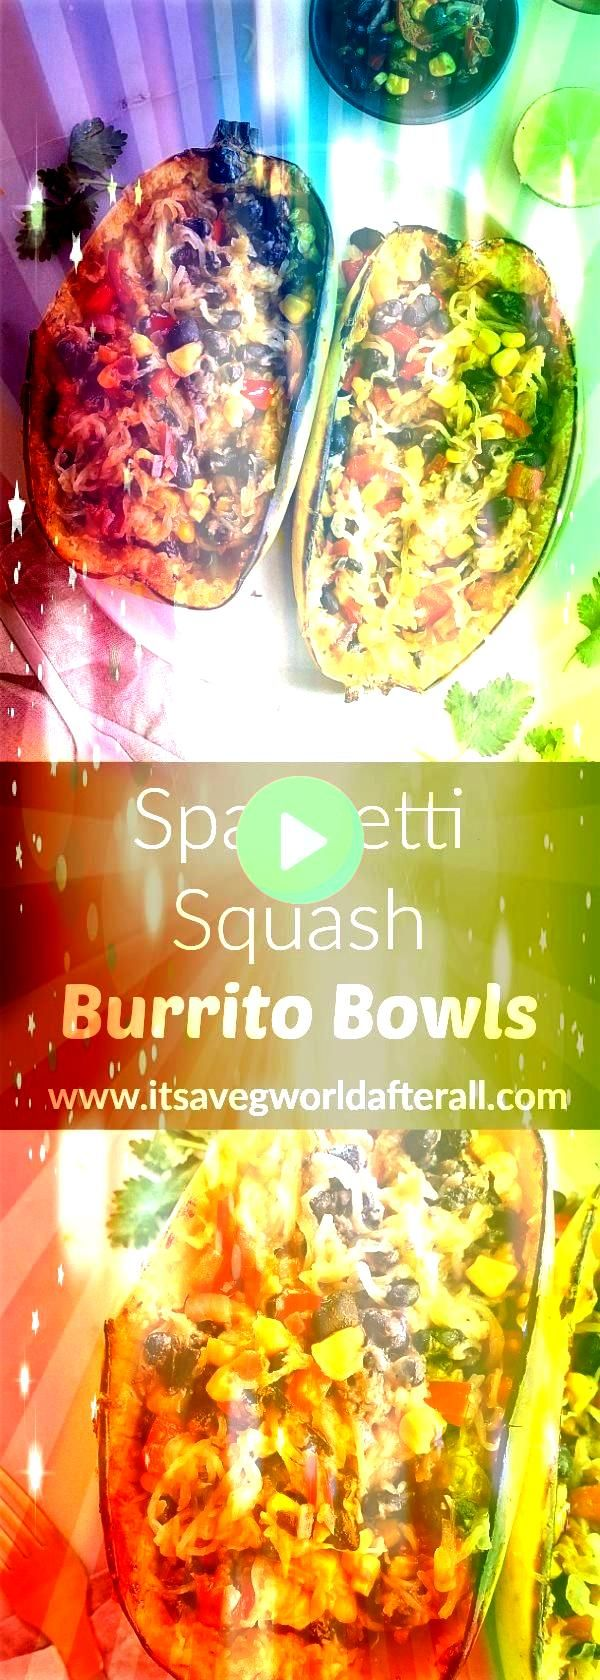 Burrito Bowls  a simple flavorful and healthy spaghetti squash recipe This vegetarian dish makes a great weeknight meal Its naturally gluten free and can easily be made v...